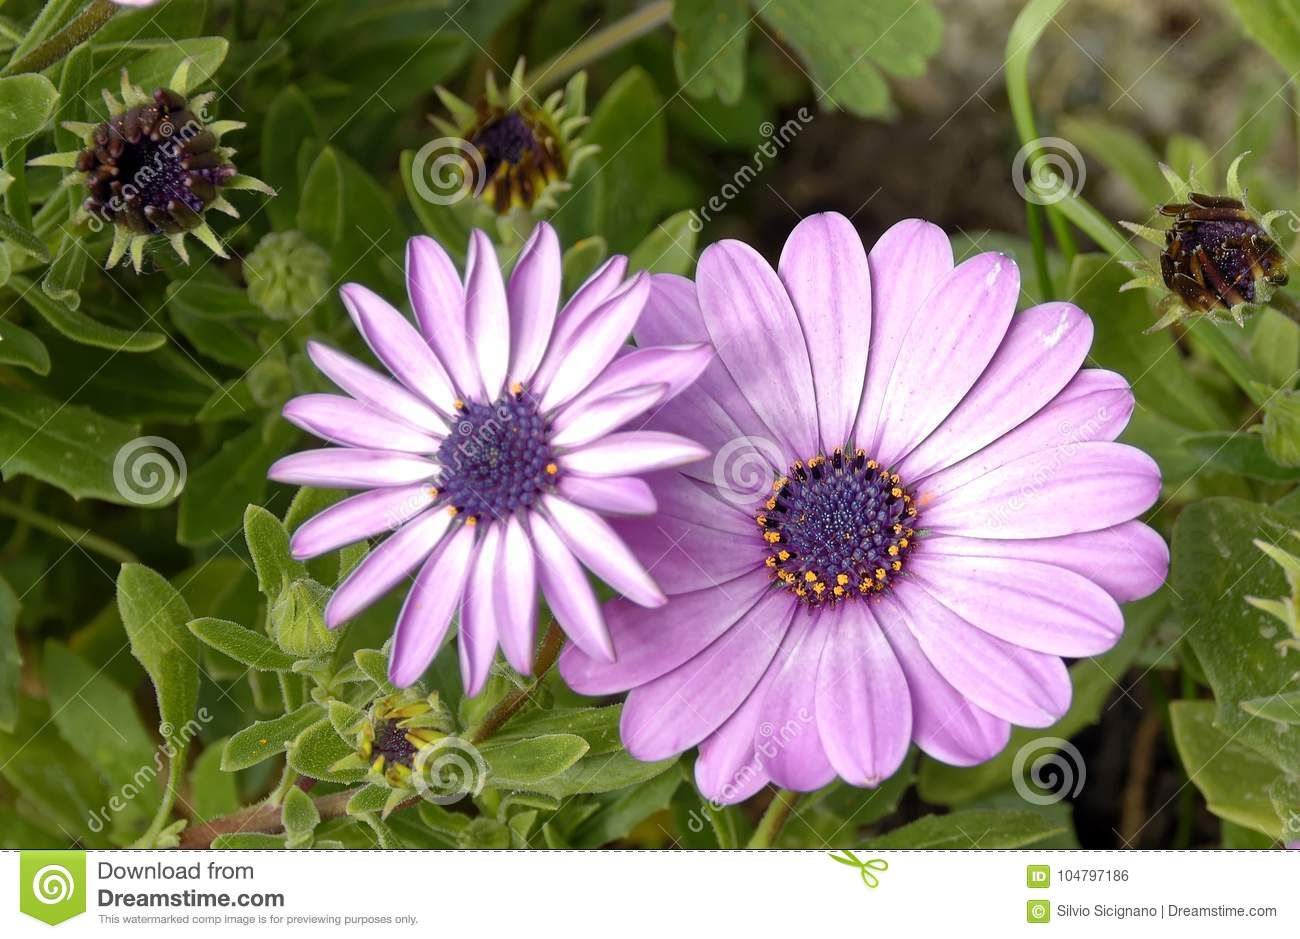 Spring Flowers Of Purple Daisy Type Stock Photo Image Of Camomile